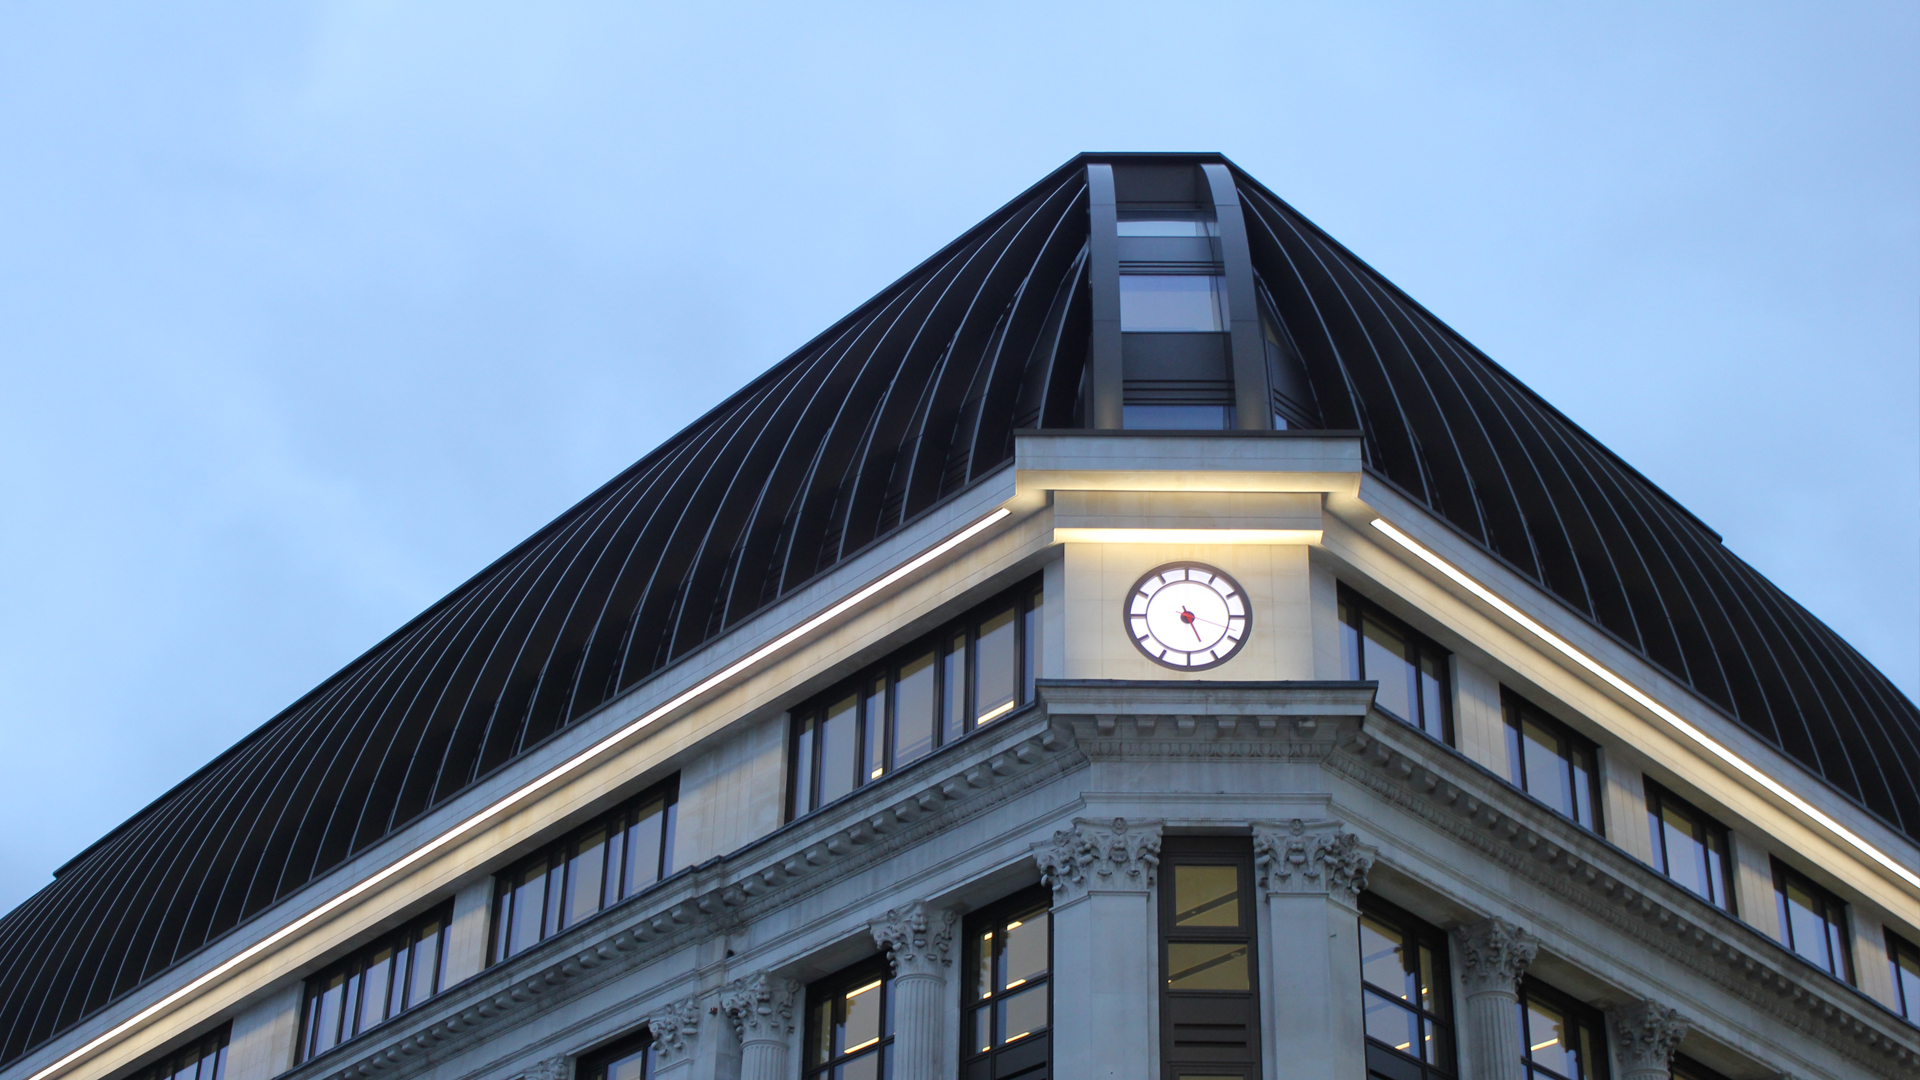 Surprising Leicester Square Exterior Facade Lighting The Light Lab Largest Home Design Picture Inspirations Pitcheantrous